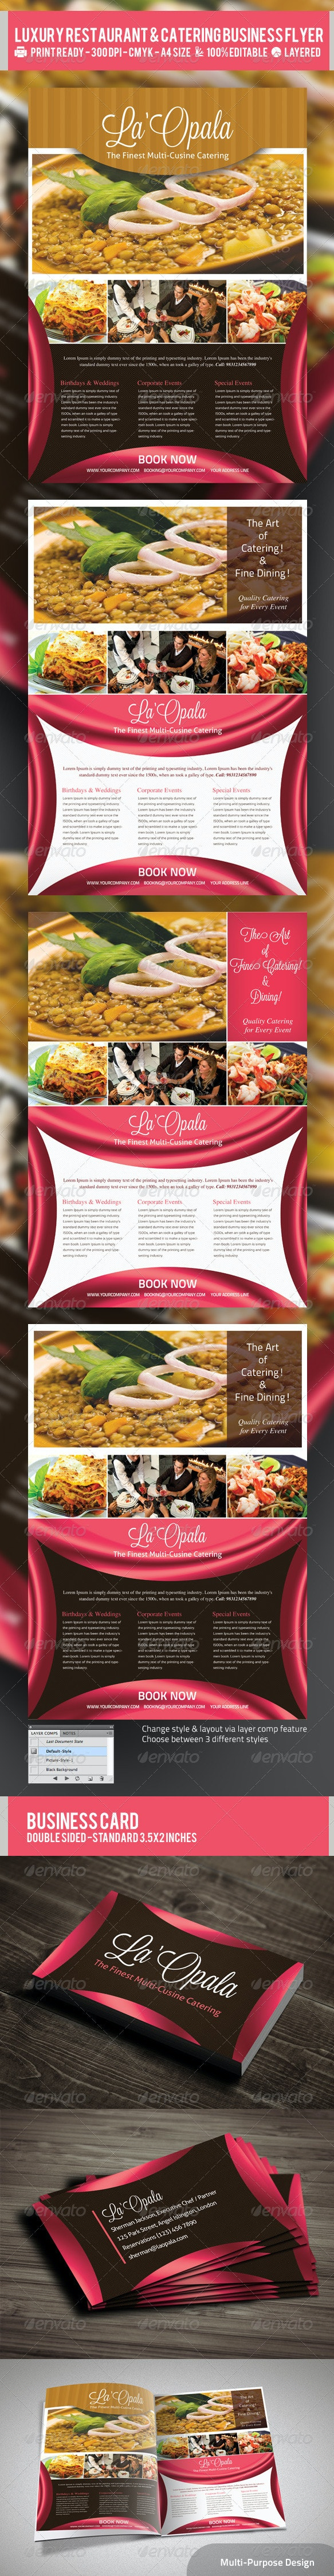 Luxury Restaurant & Catering Flyer PSD Template - Industry Specific Business Cards